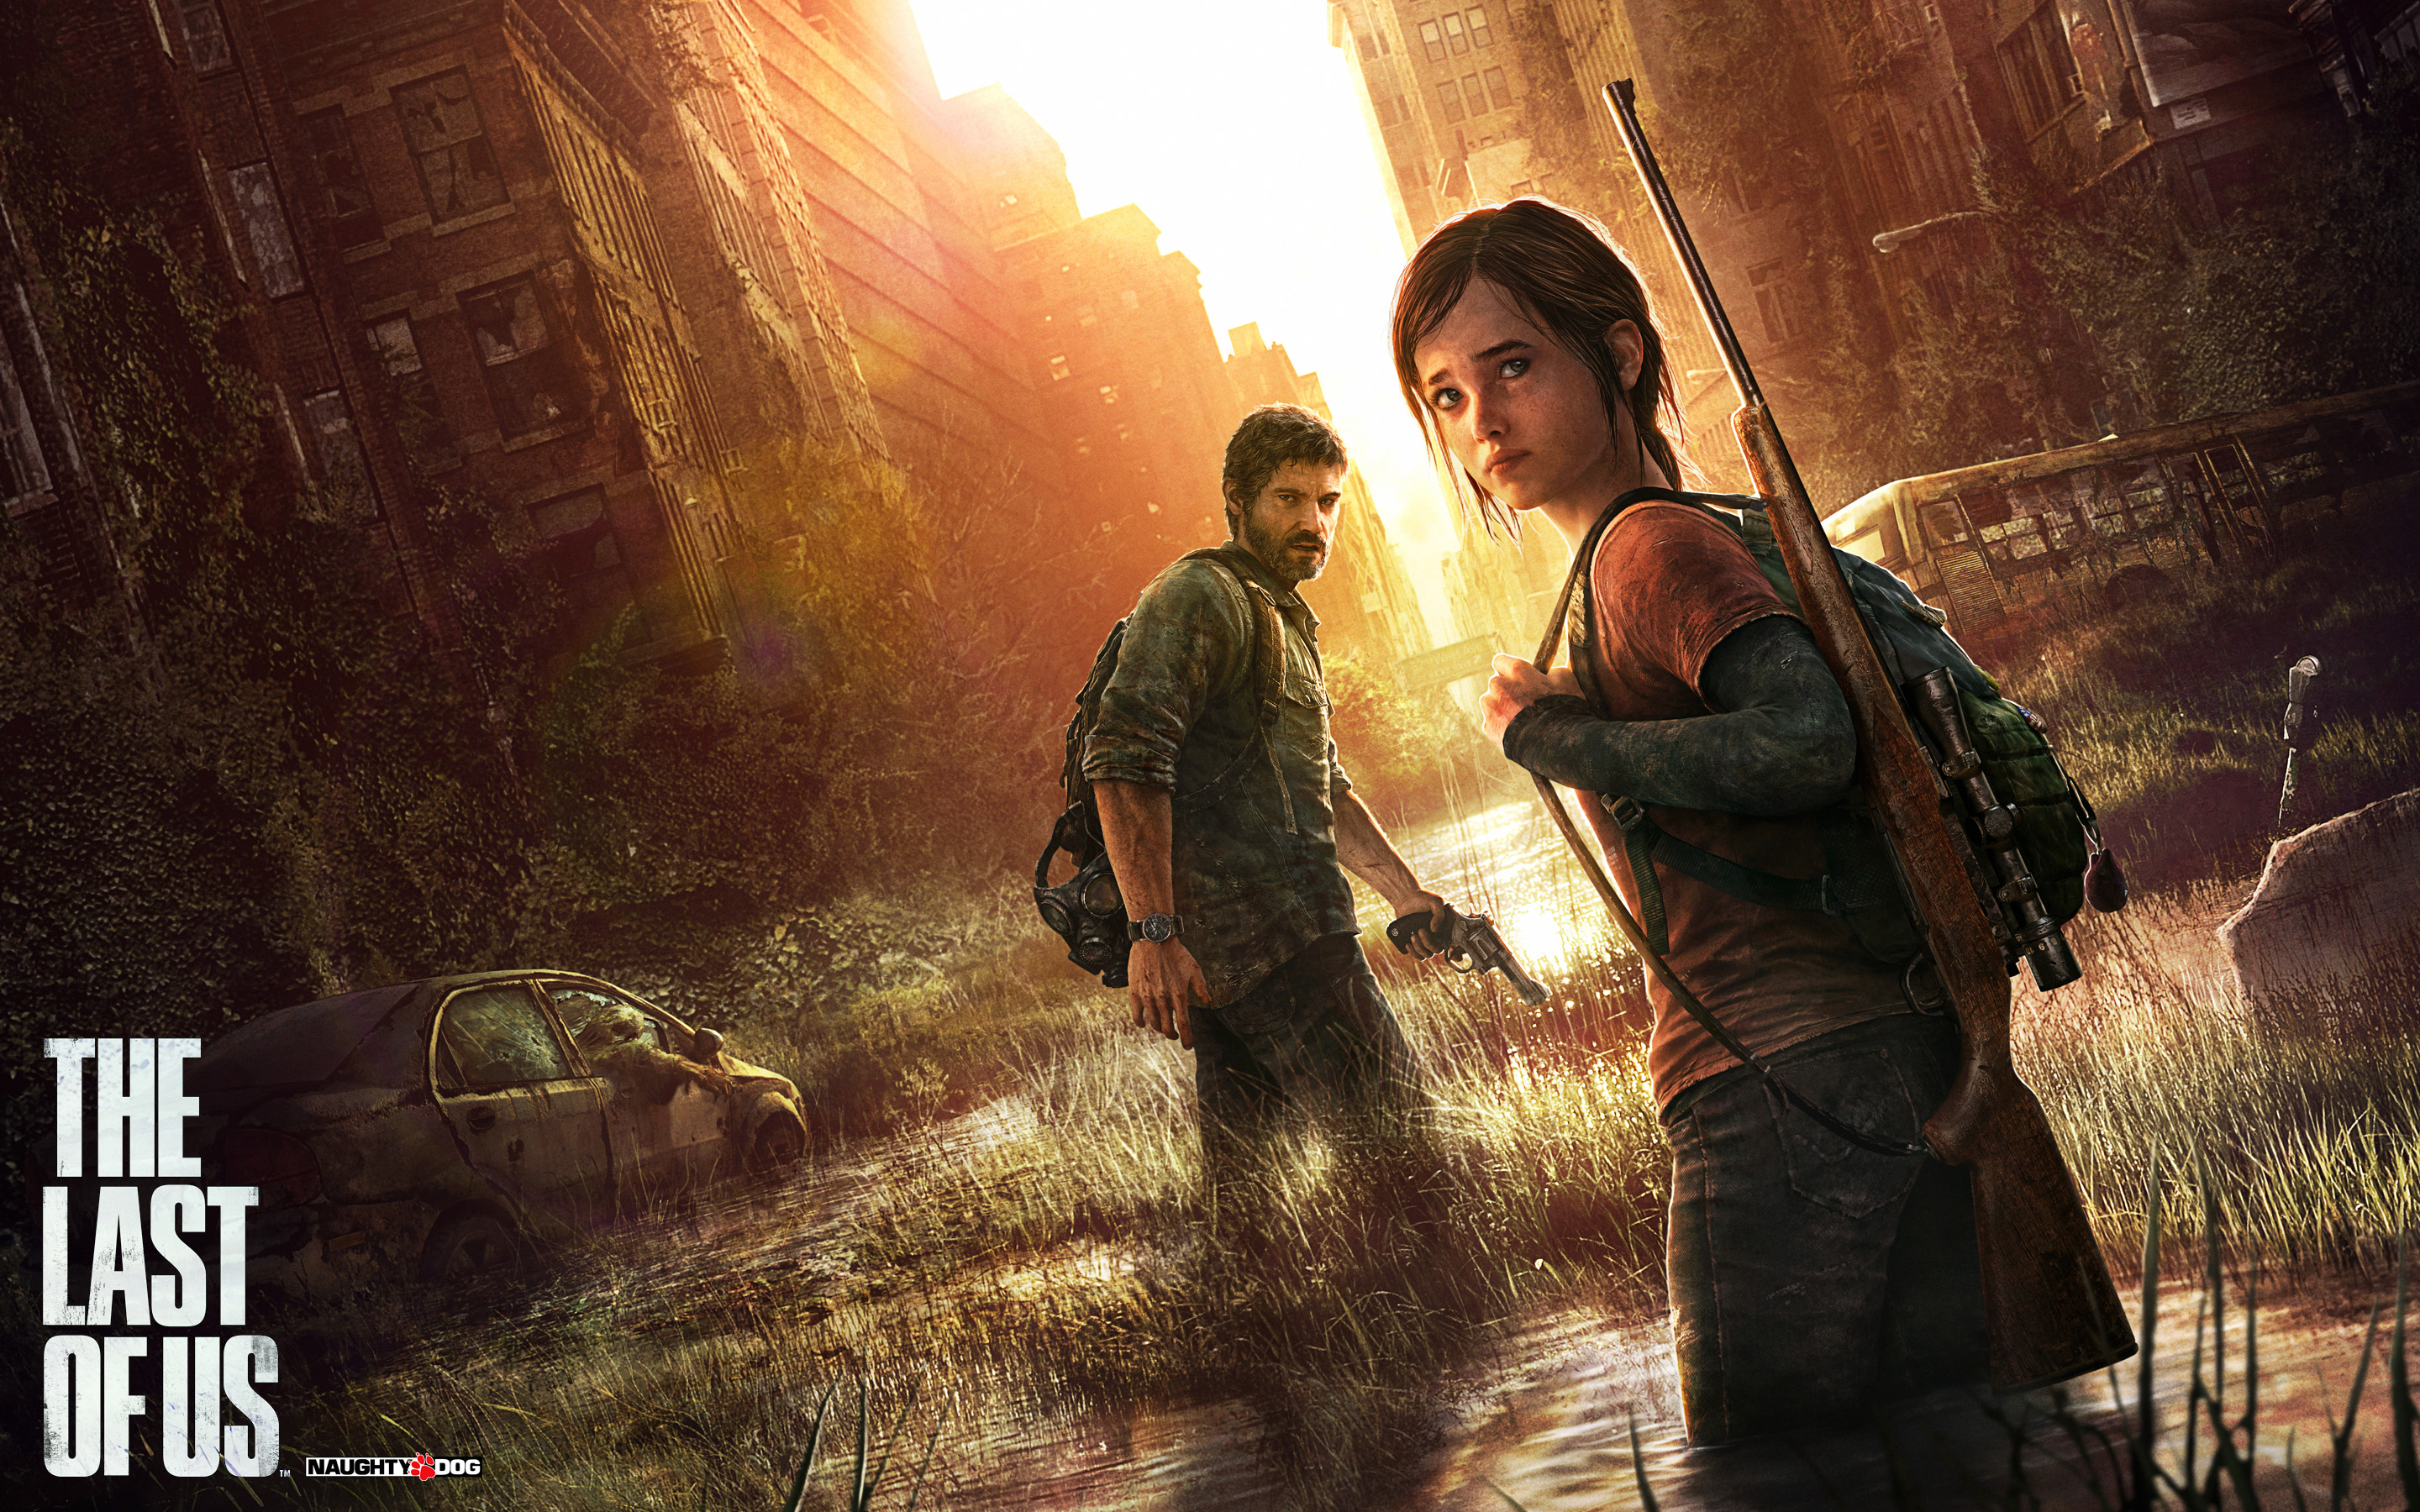 The Last of Us dans Playstation 3 thelastofus